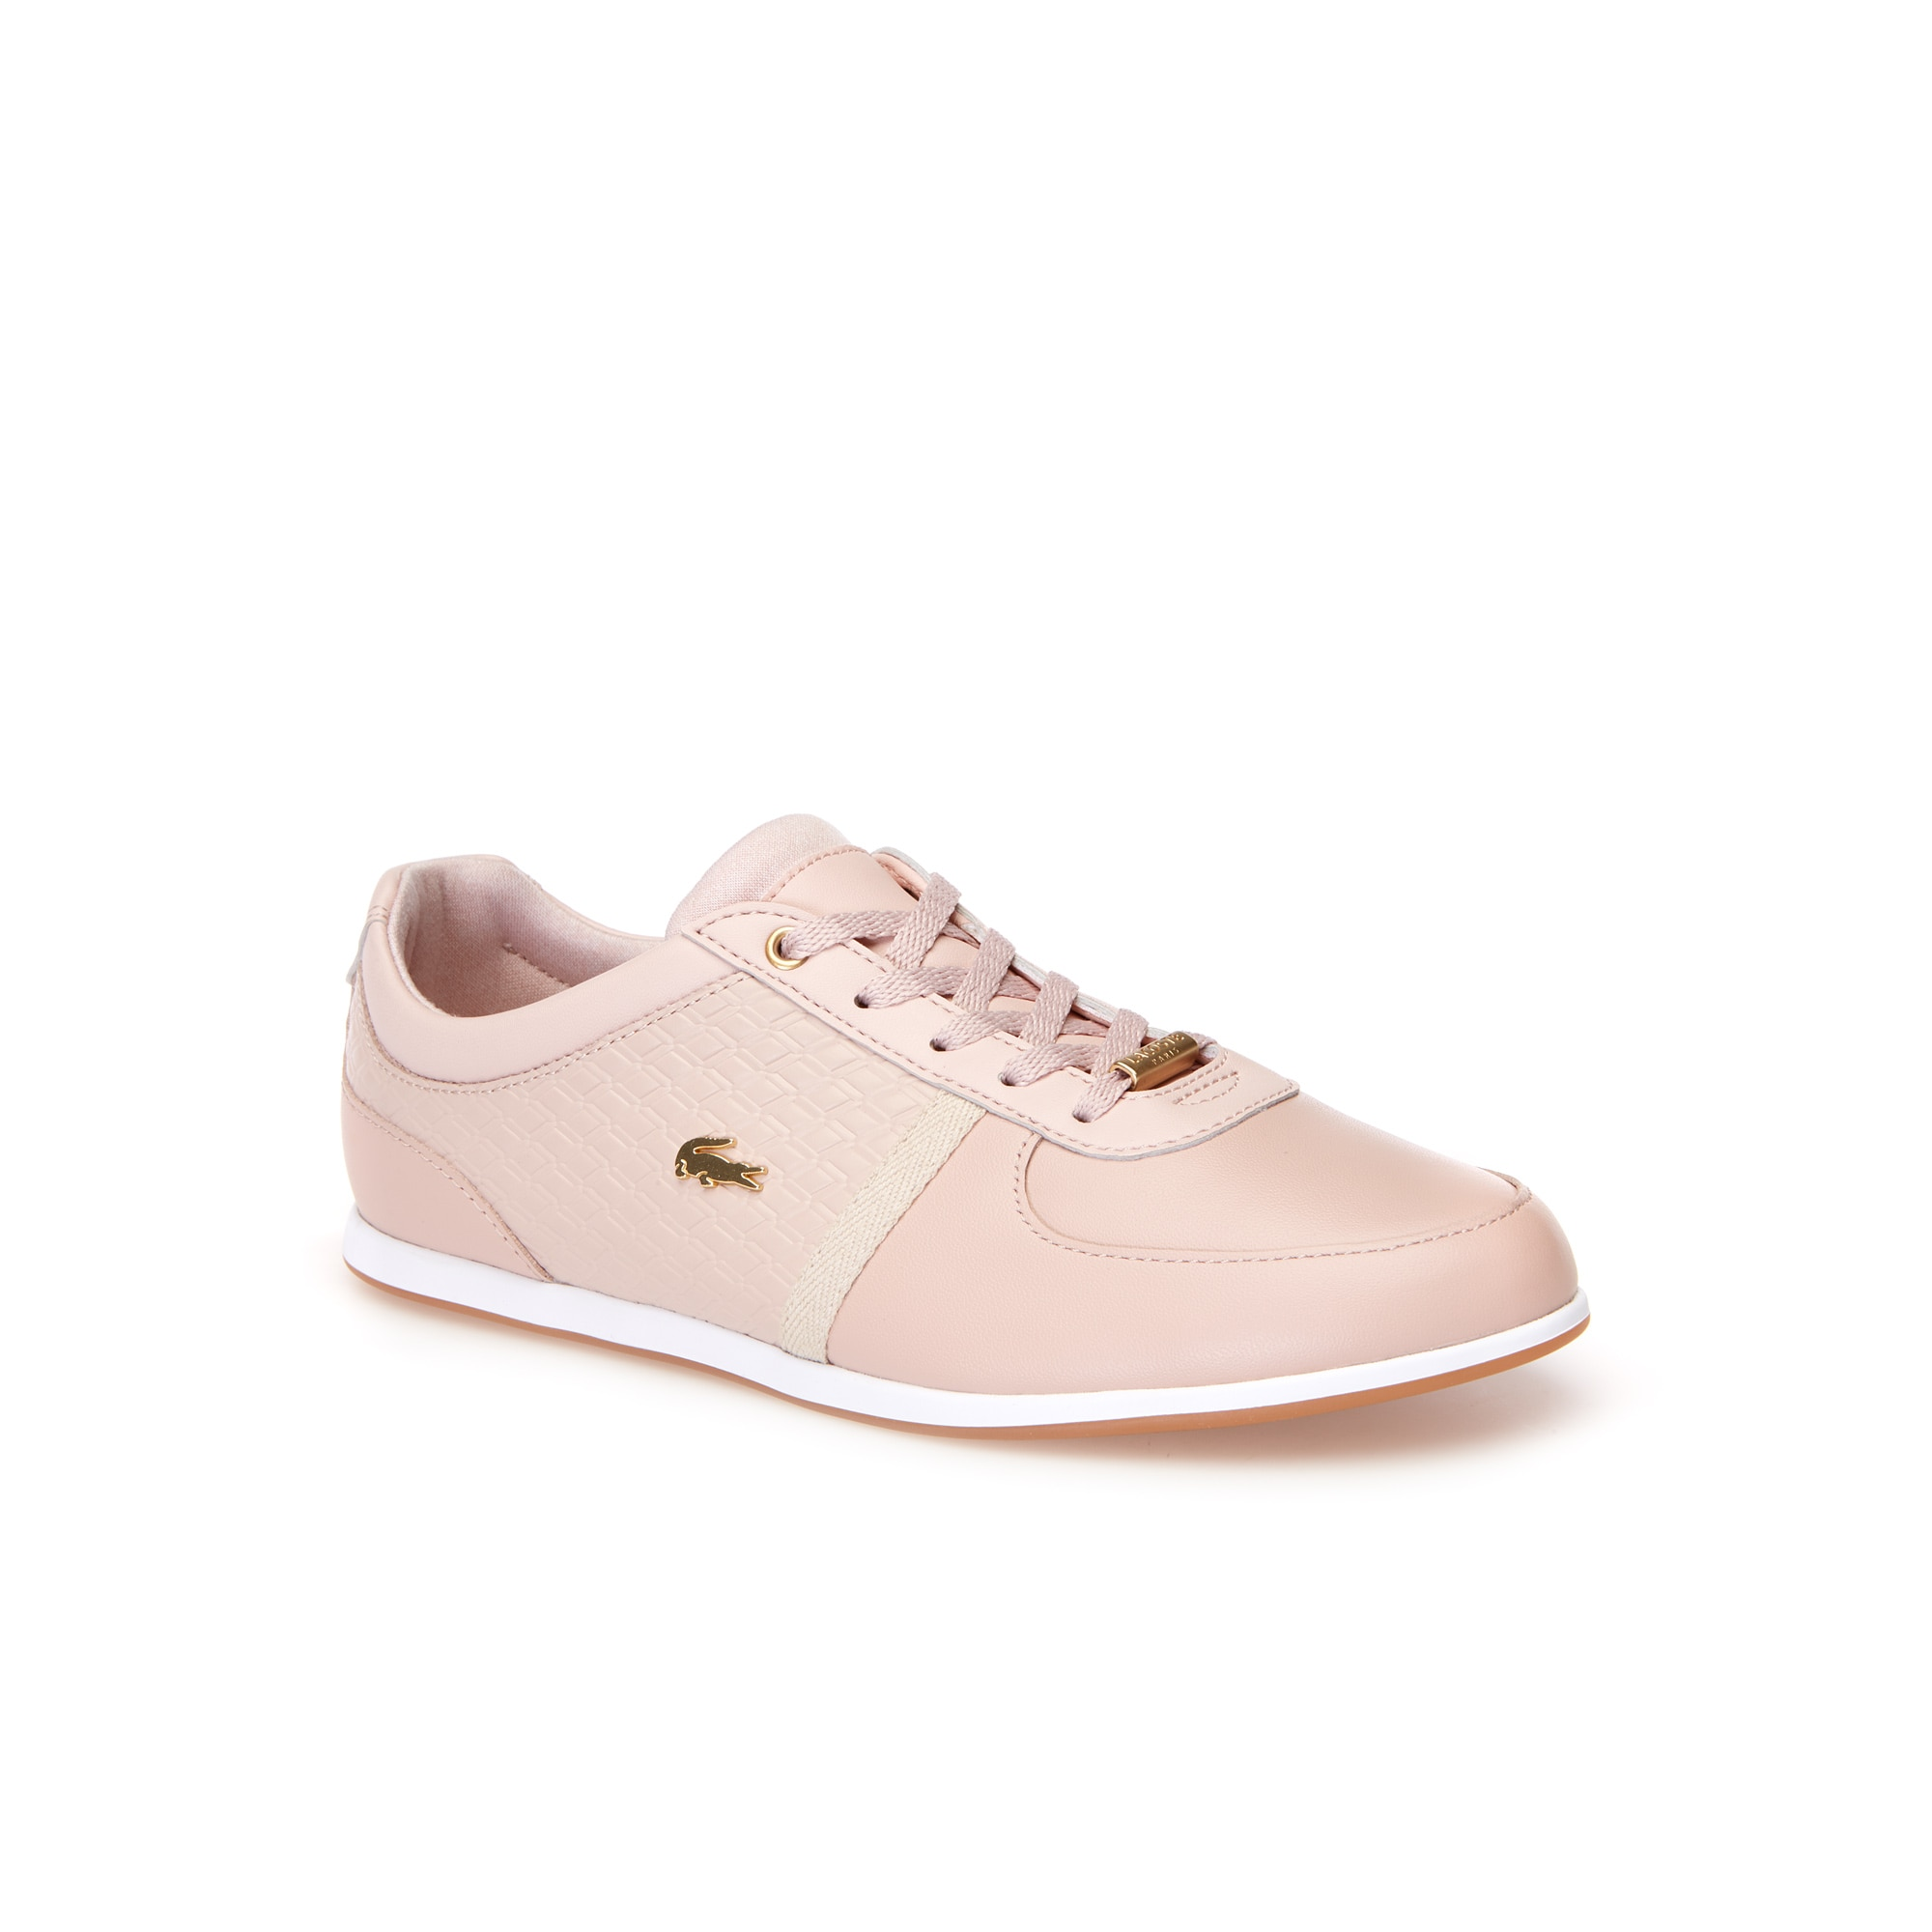 68787efdc72 Lacoste shoes for women: Boots, Trainers, Sneakers | LACOSTE